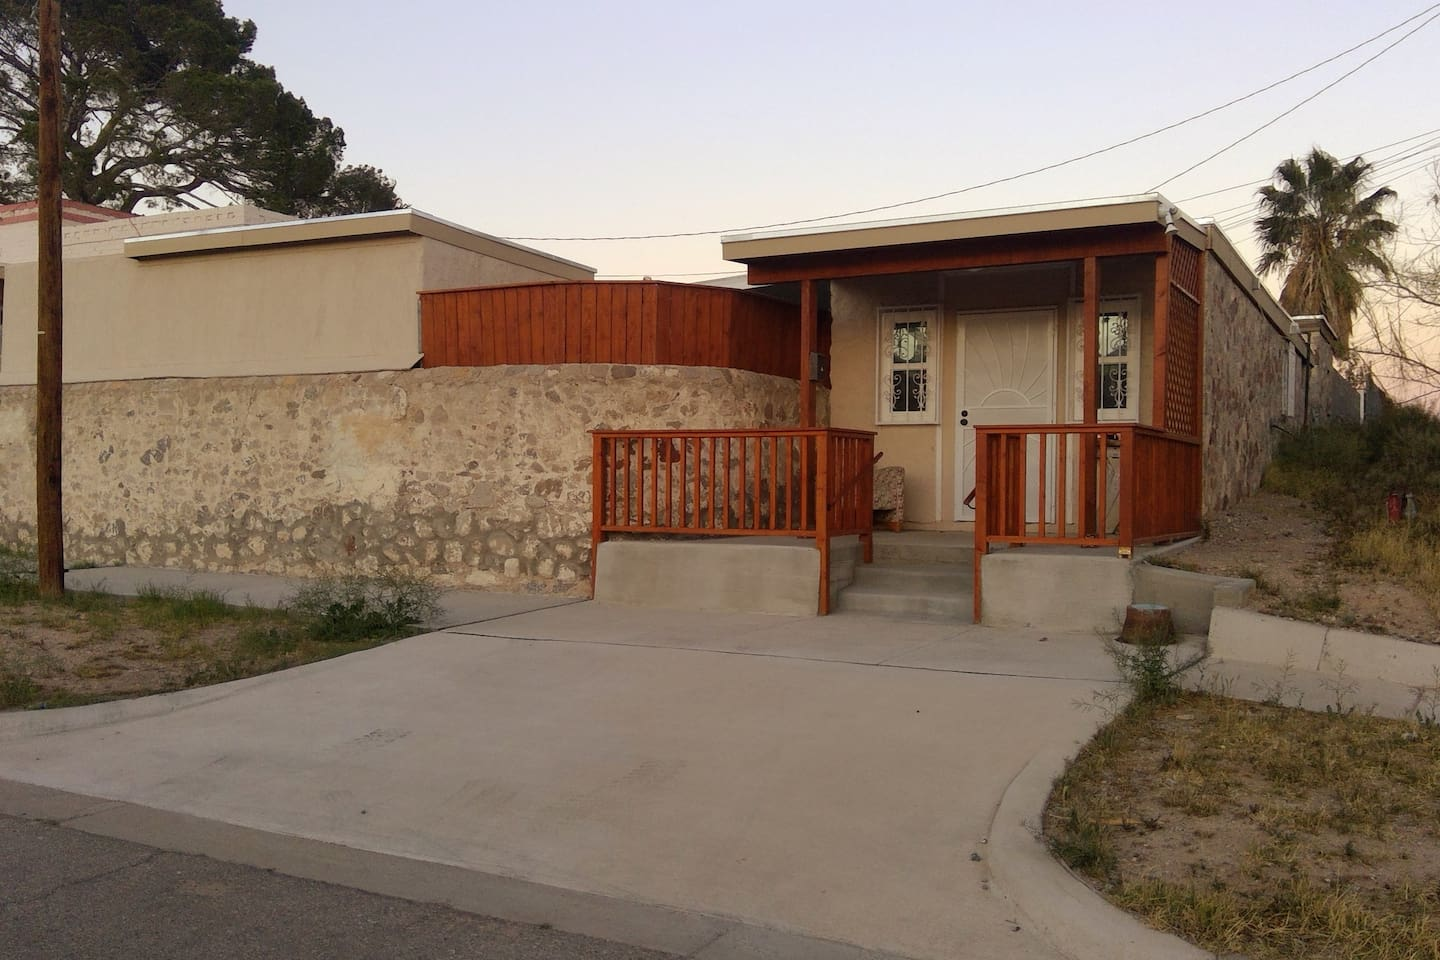 Private entrance and driveway.